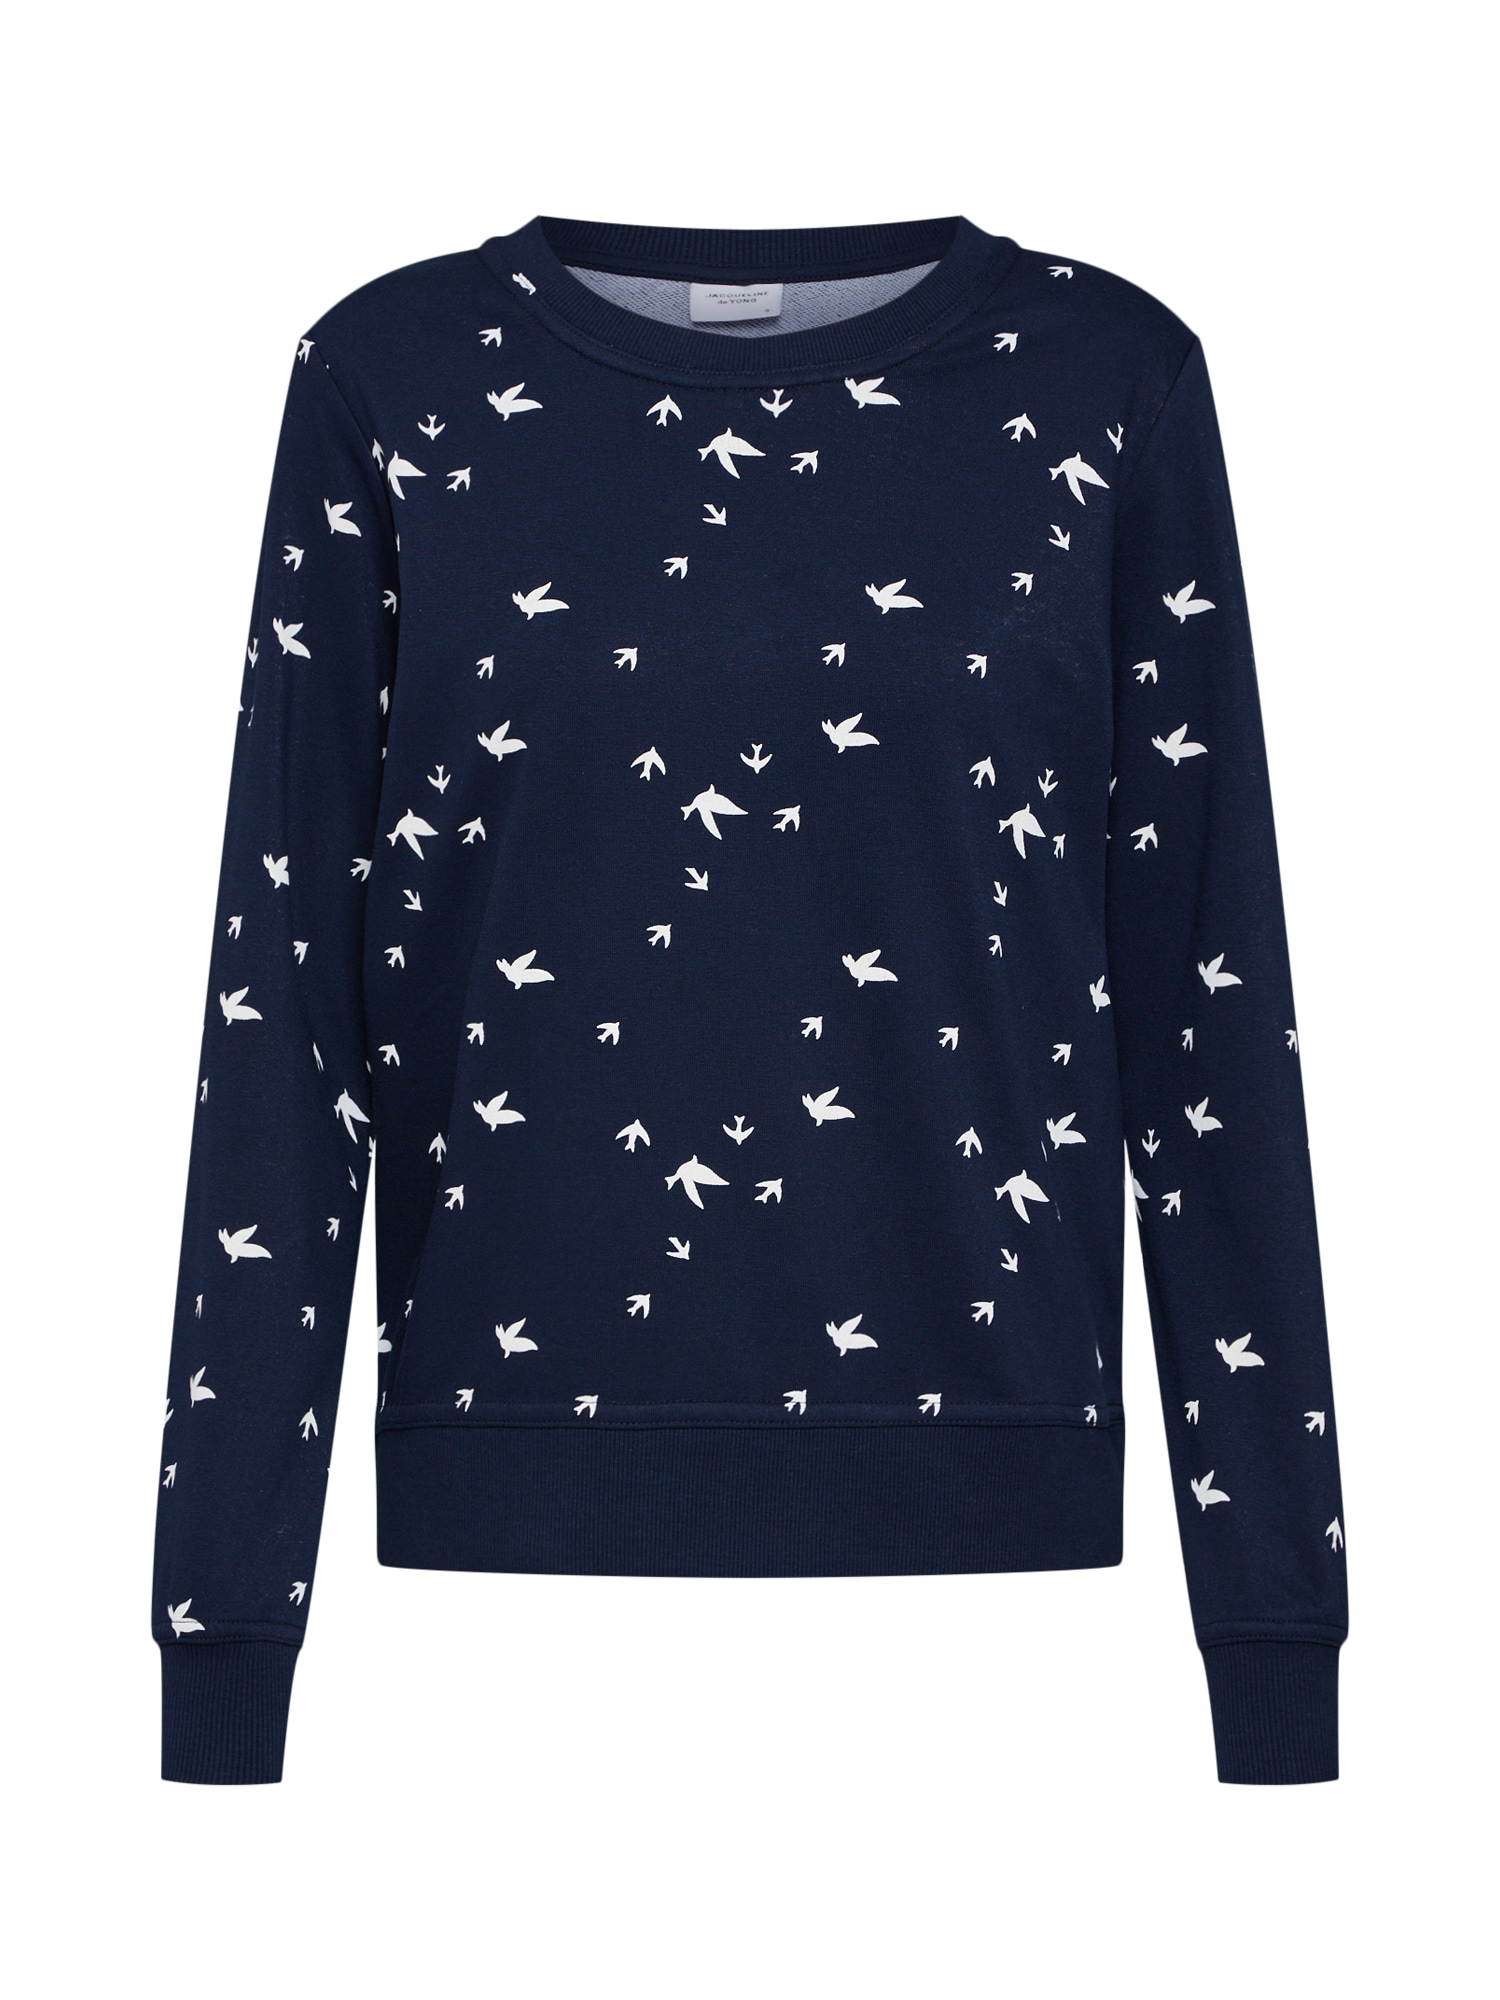 ONLY Long Sleeved Sweatshirt Dames Blauw